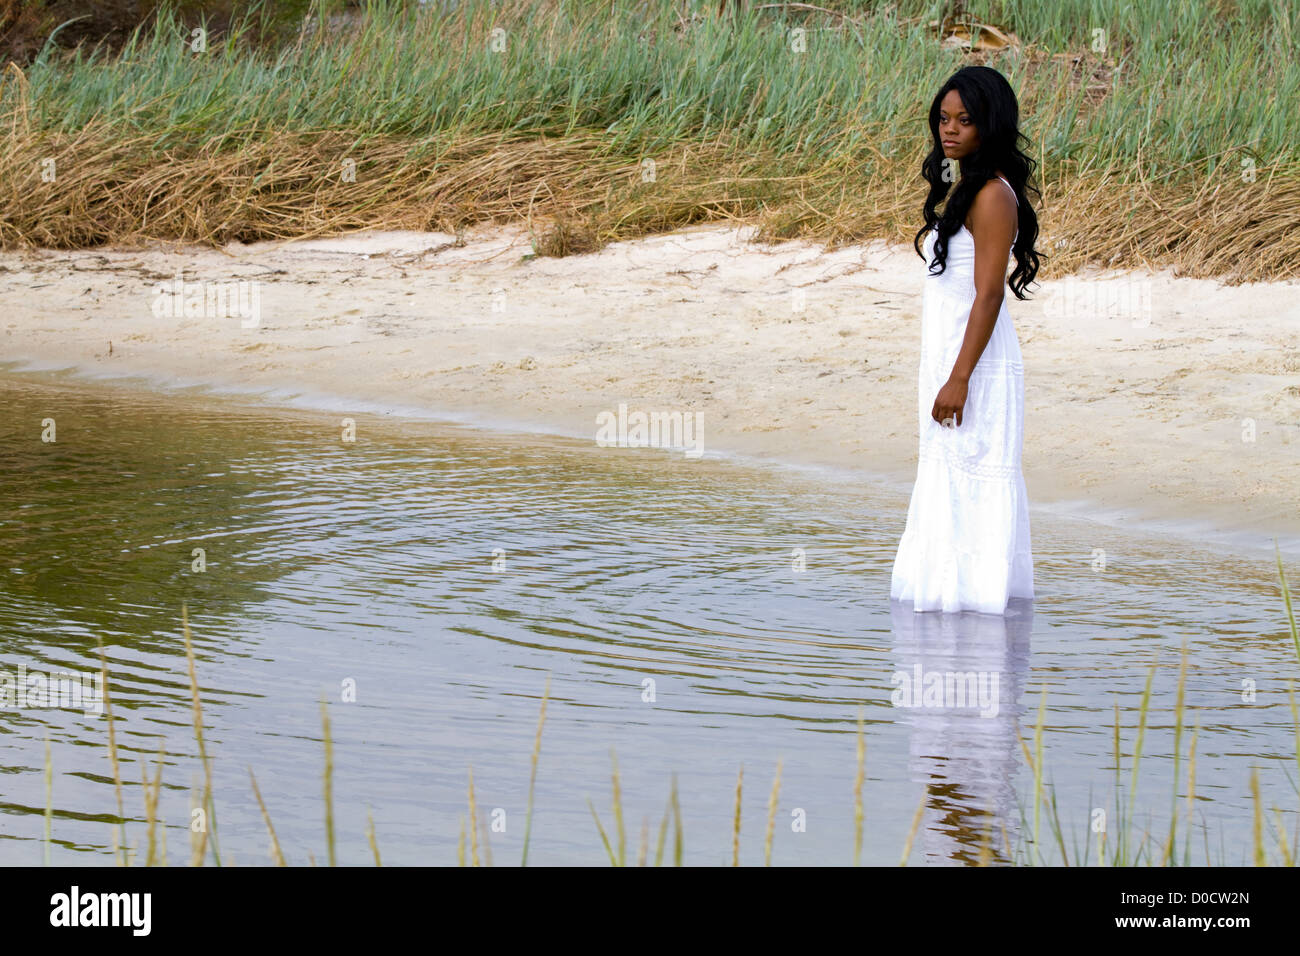 Lonely African American woman stands downcast in shallow water with a sad pensive look on her face. - Stock Image